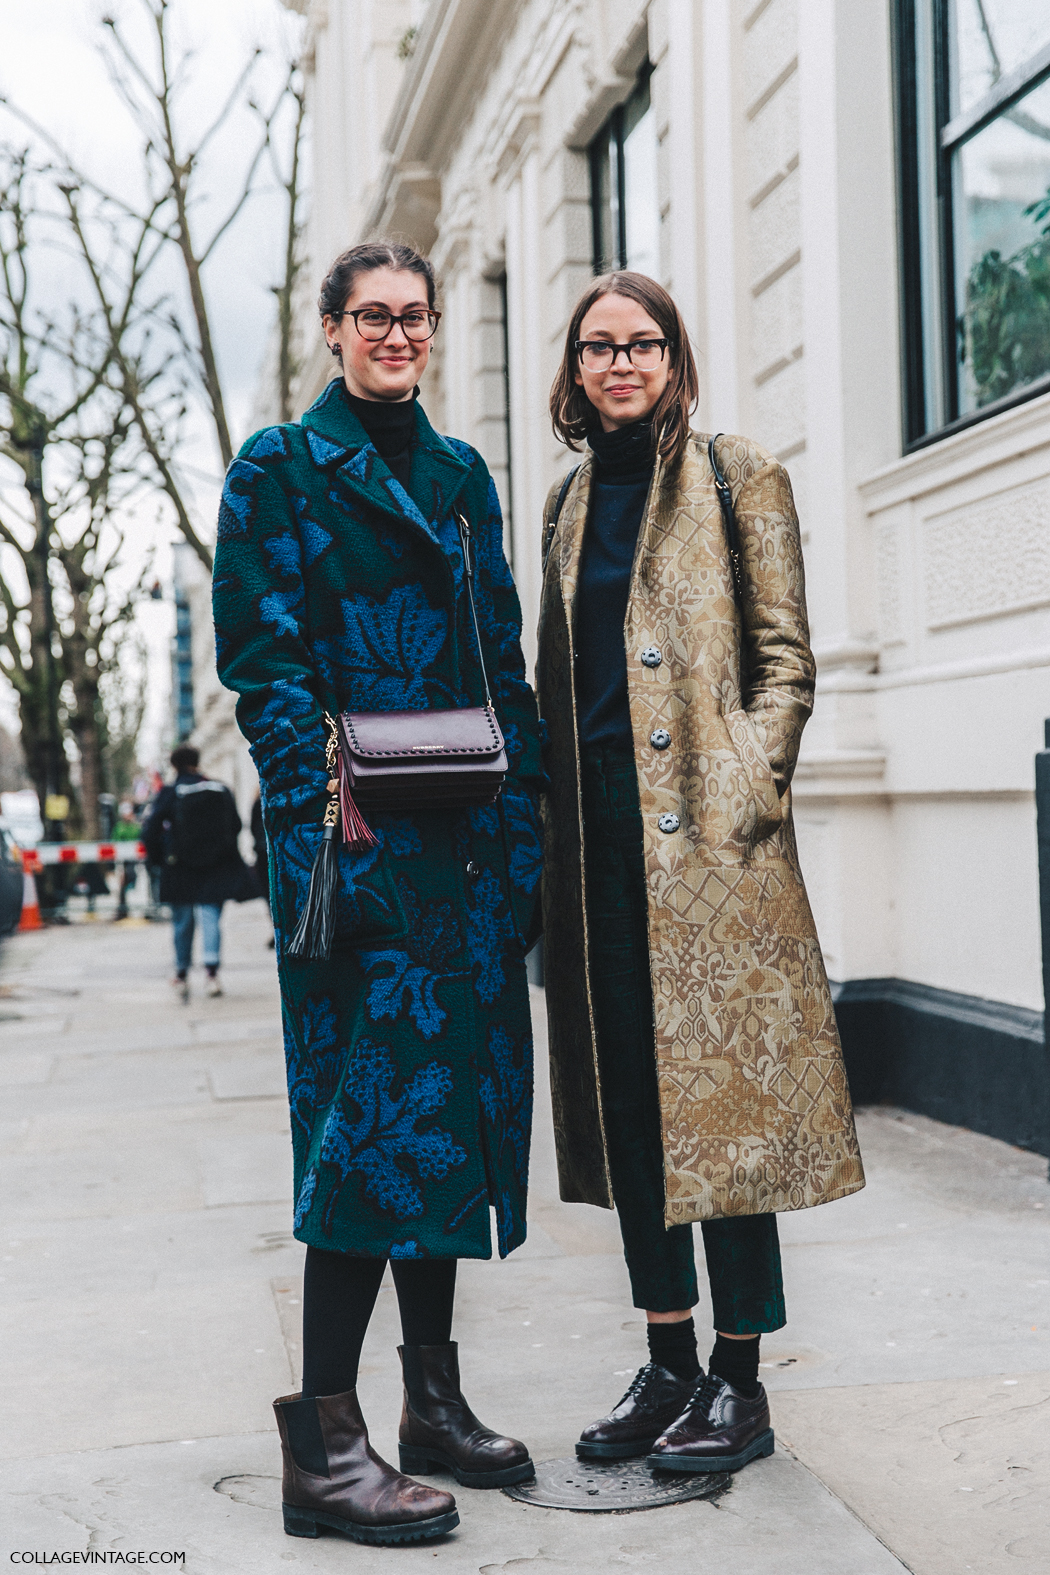 LFW-London_Fashion_Week_Fall_16-Street_Style-Collage_Vintage-Burberry-1